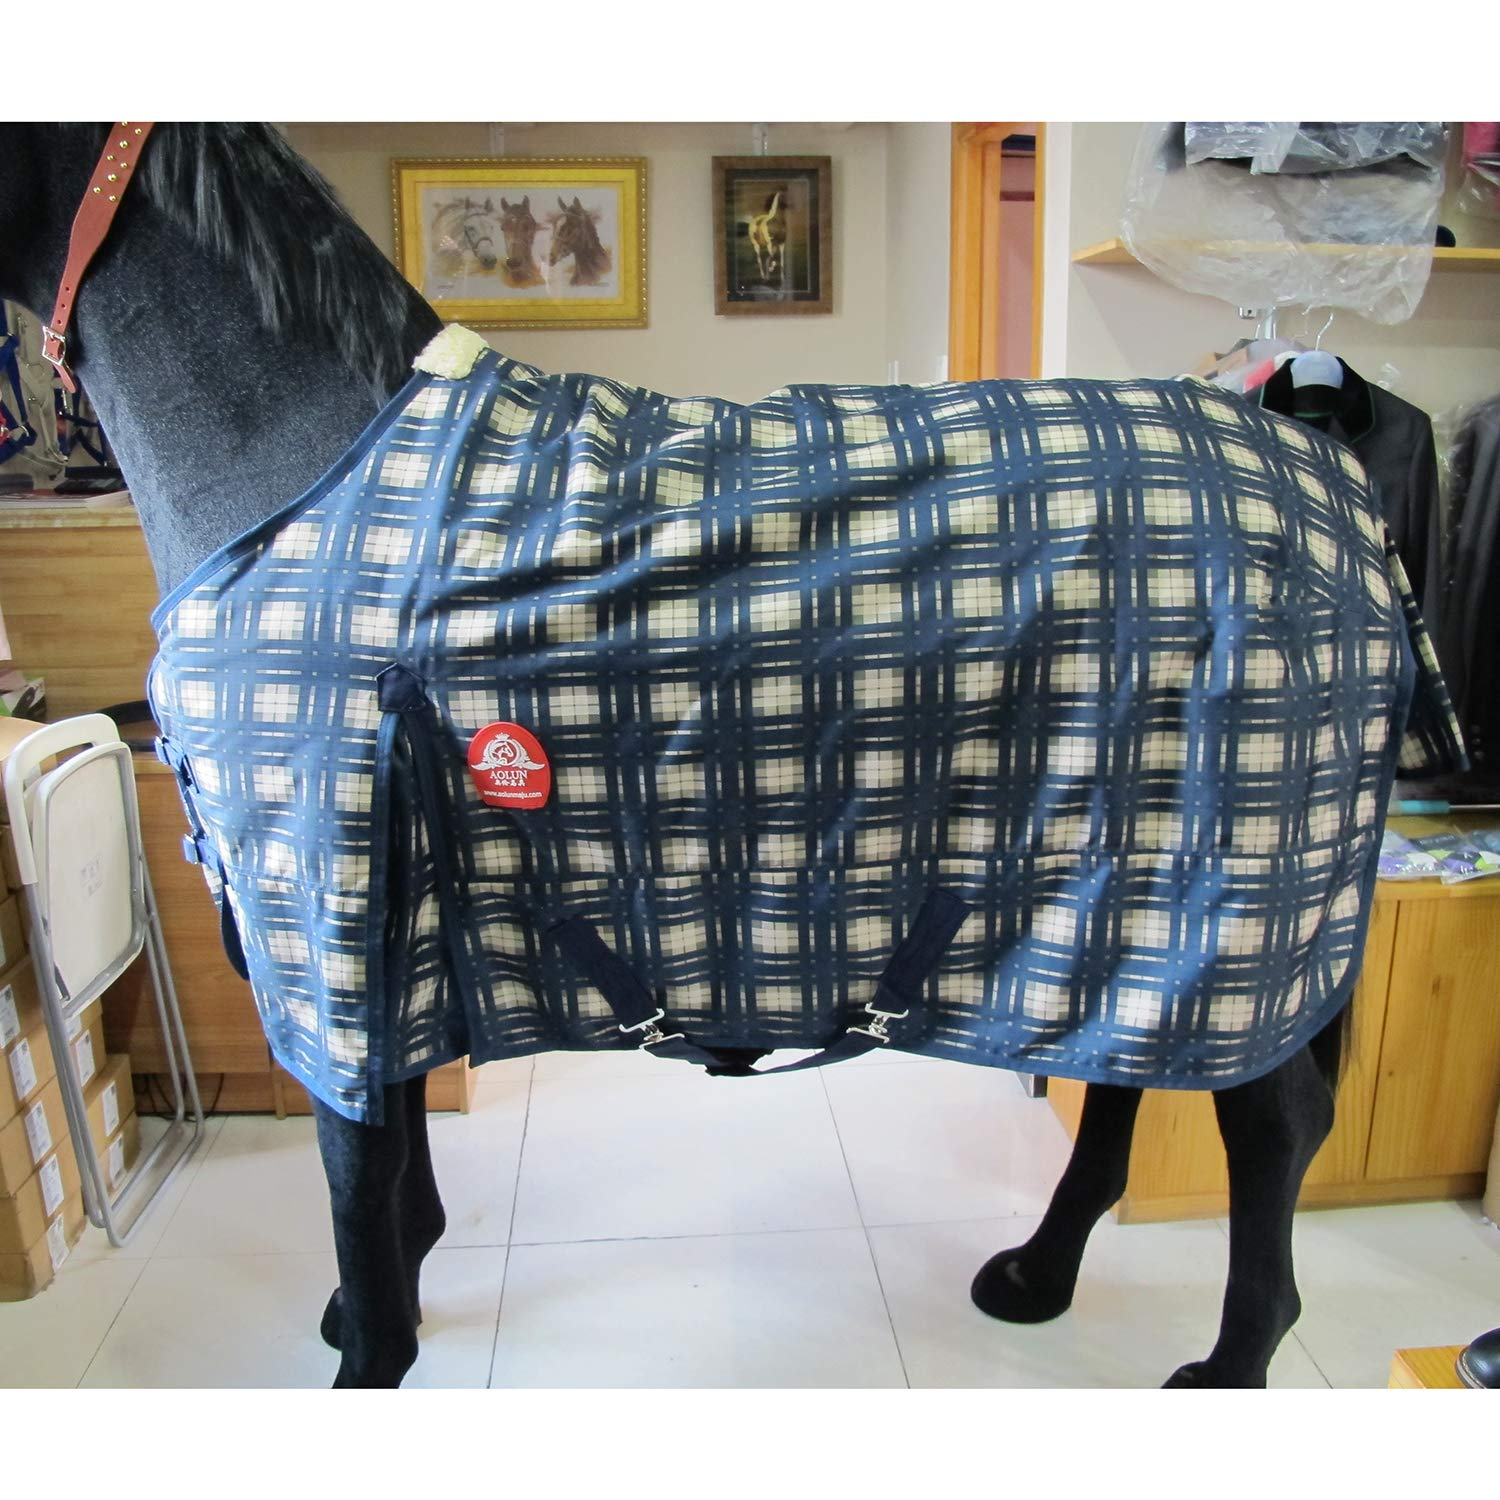 Winter Horse Blanket 1200D Waterproof Breathable 300G Thick Cotton, Equestrian Supplies,135cm